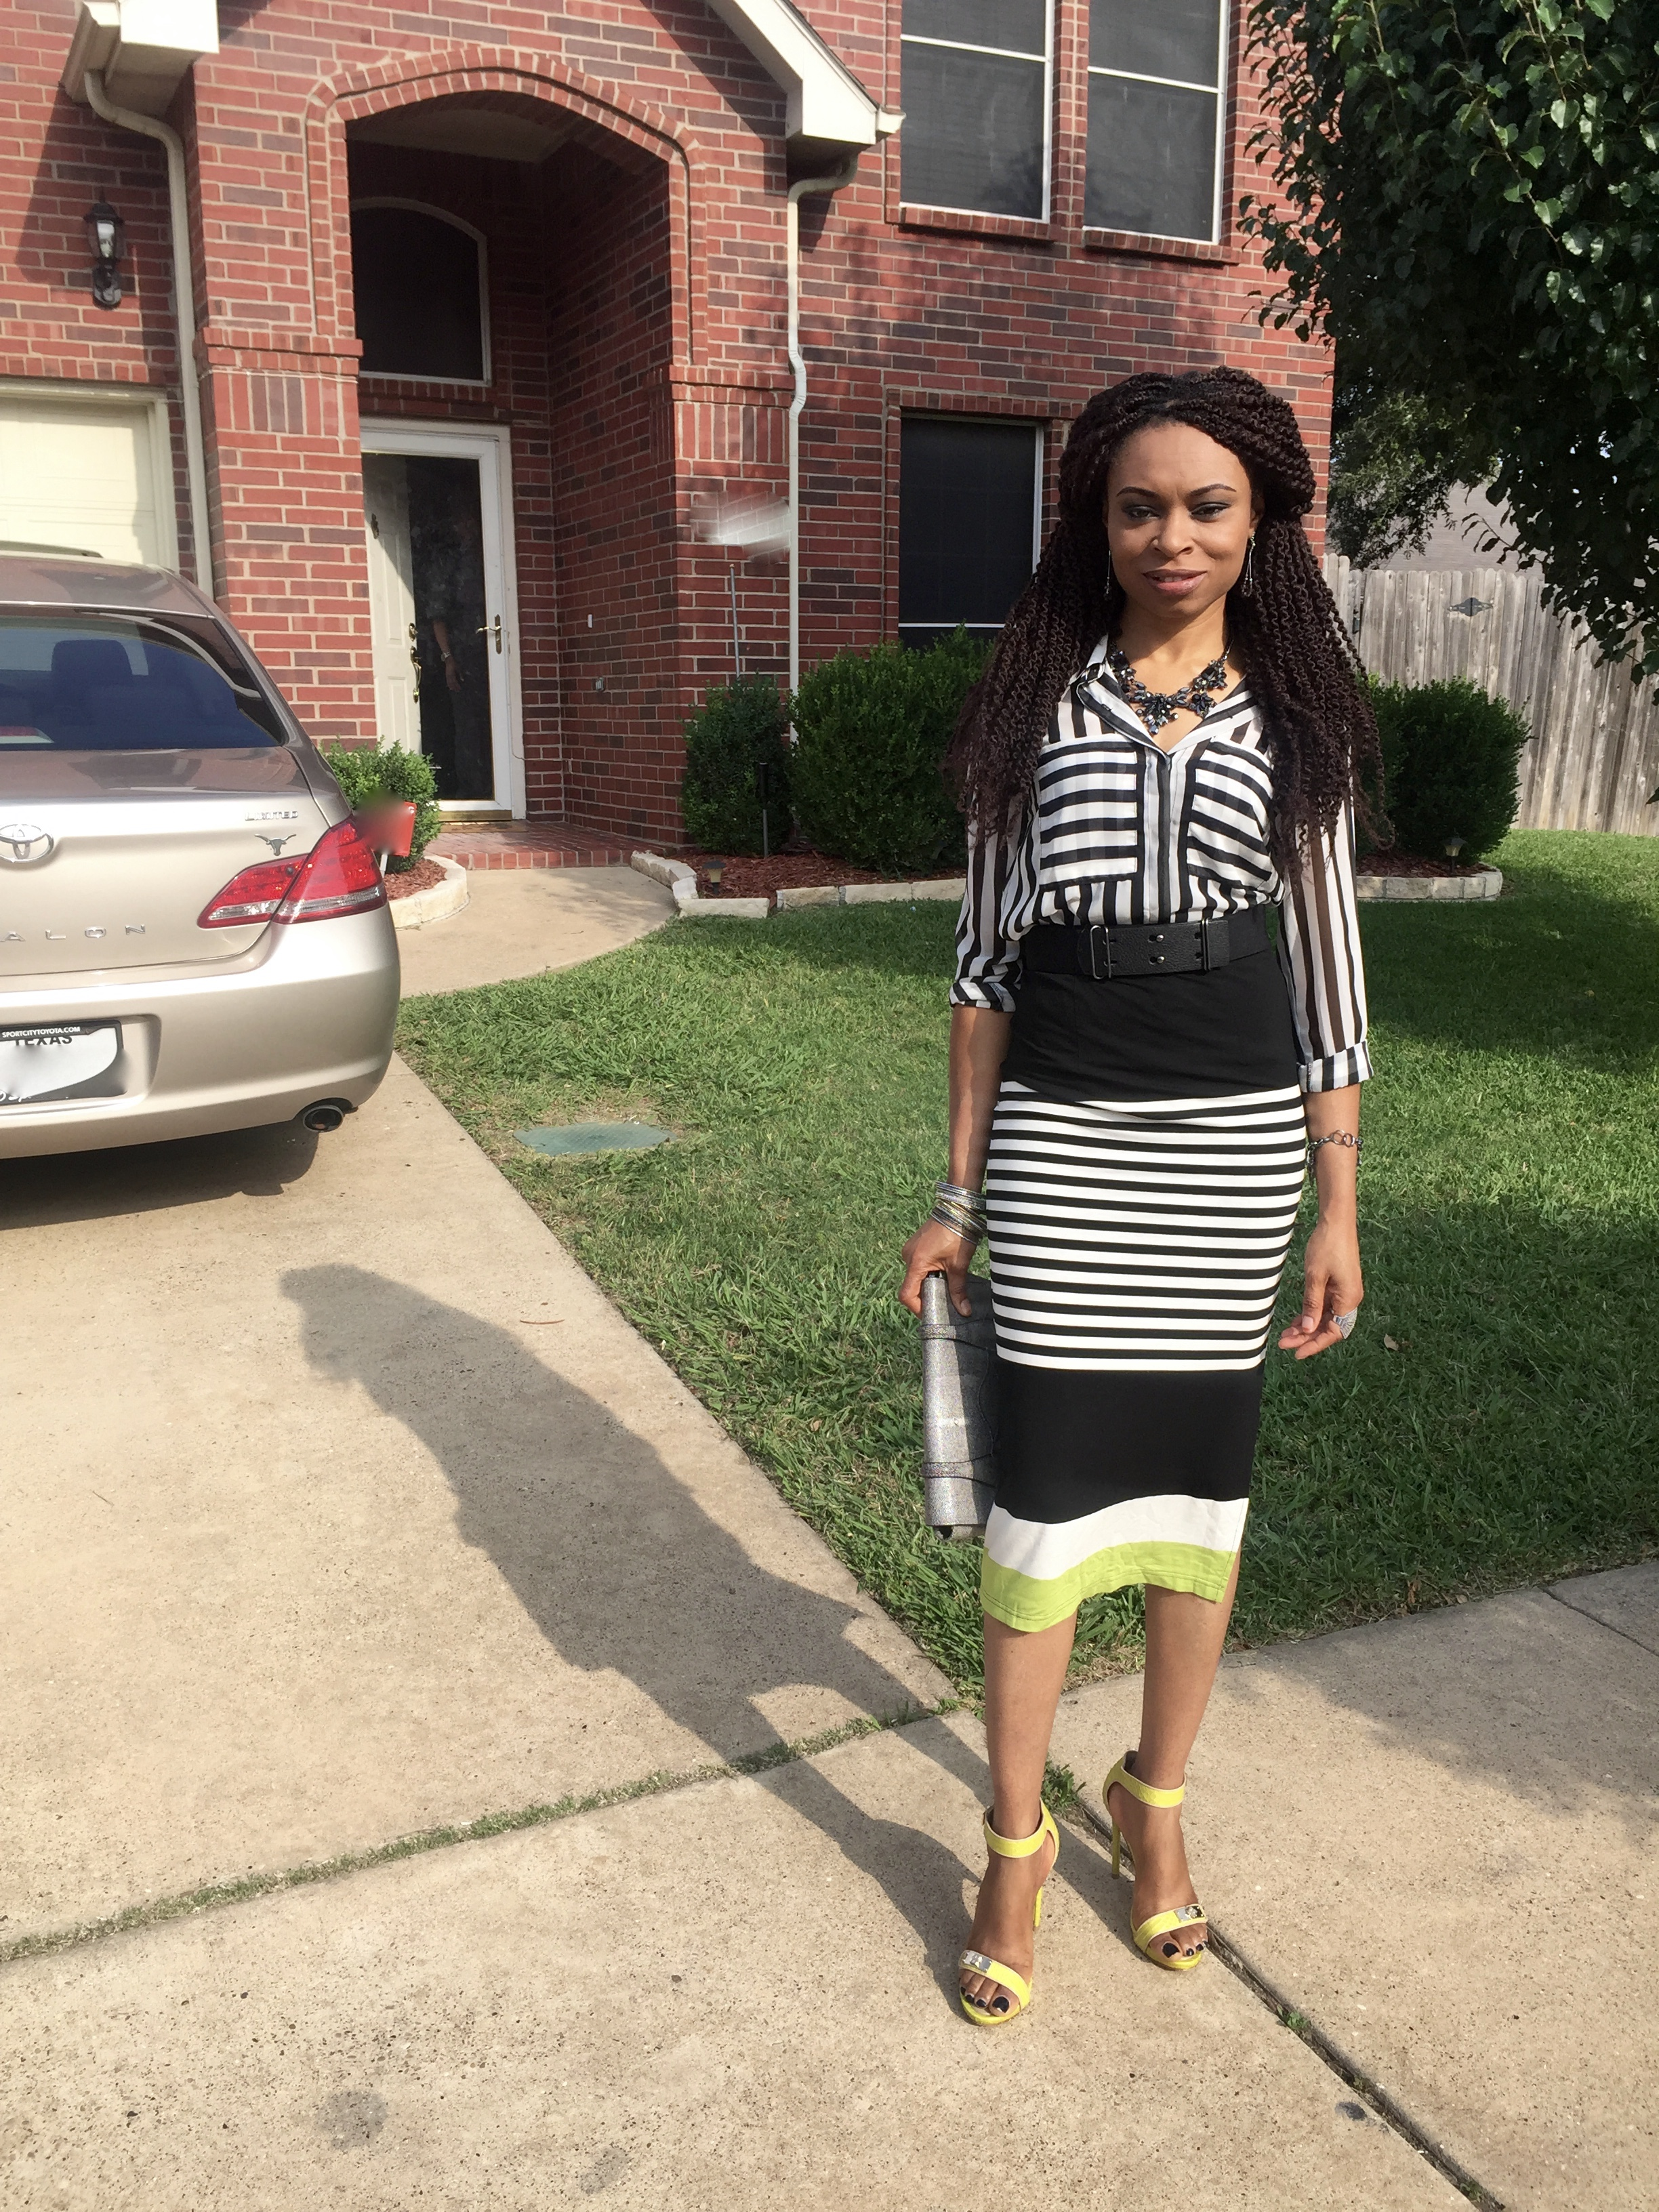 Stepping out for church...